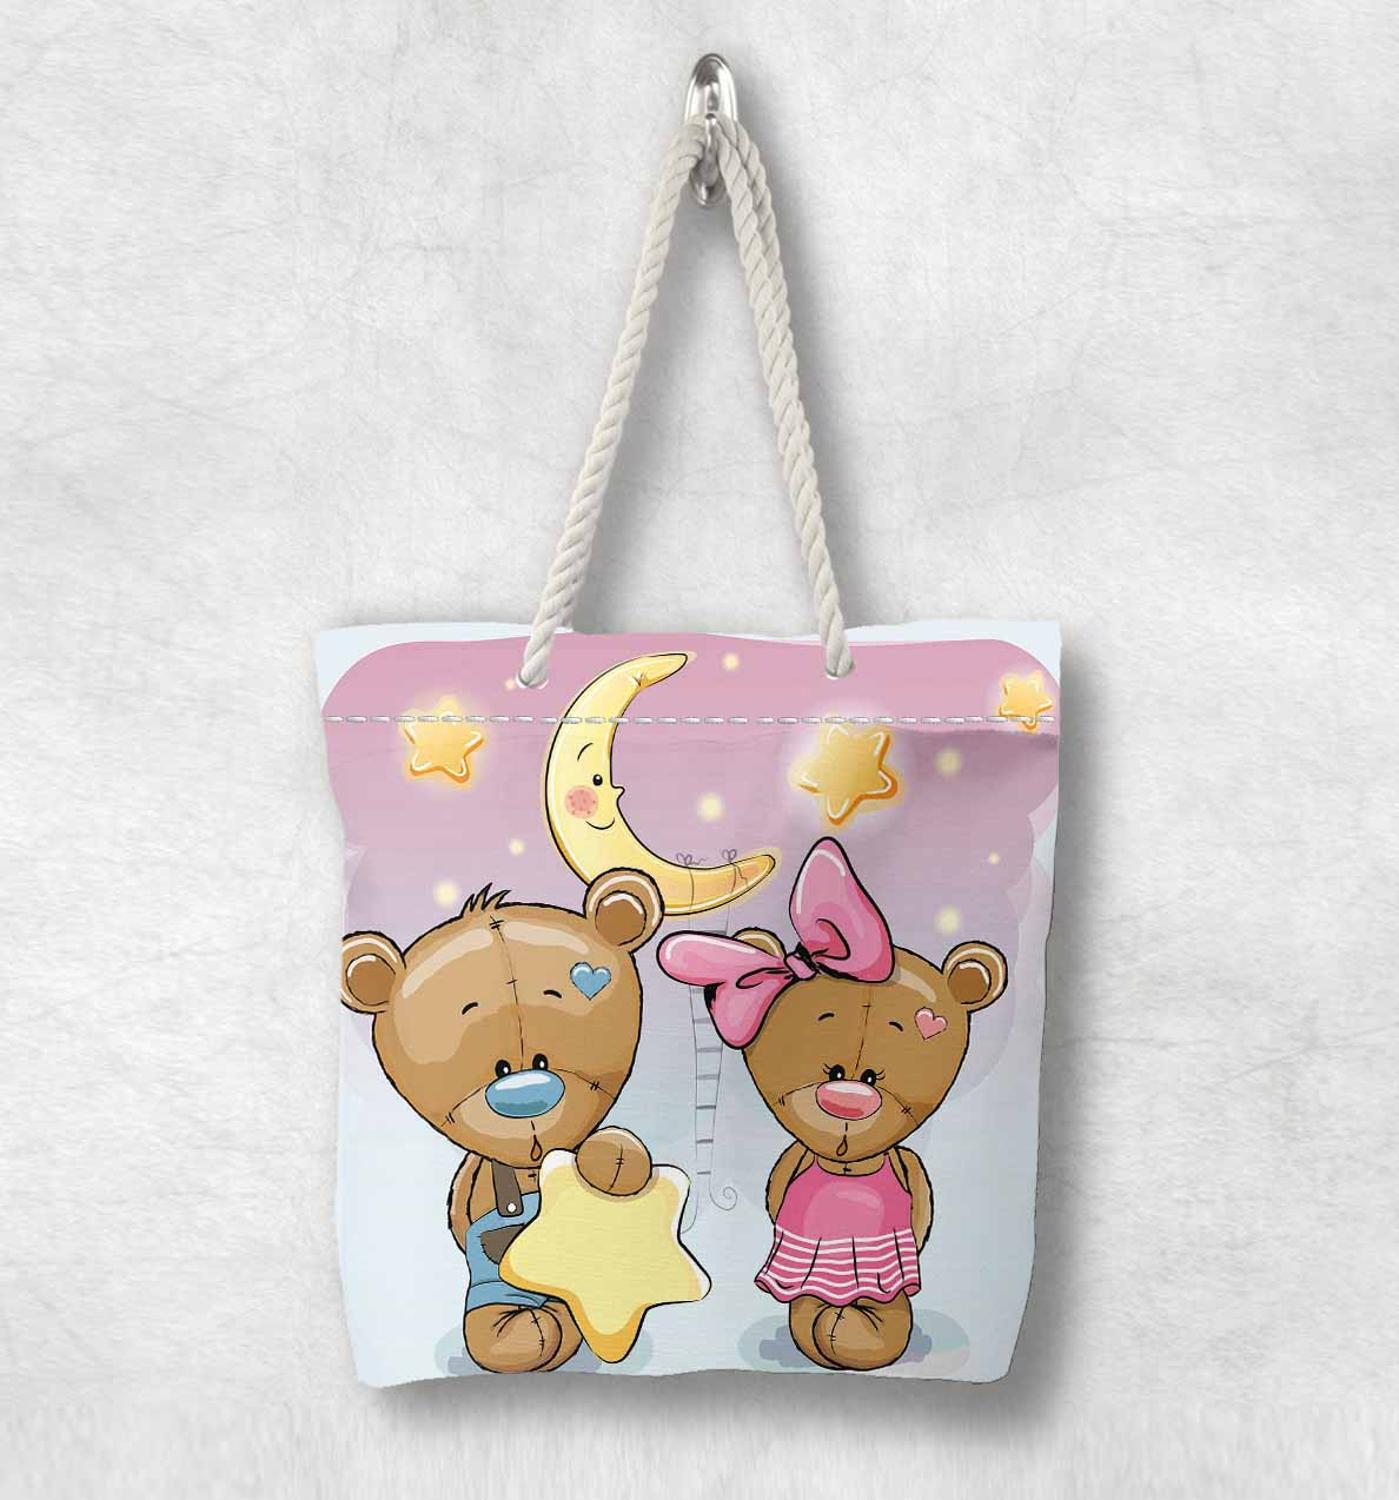 Else Cute Funny Bears Pink Yellow Stars New Fashion White Rope Handle Canvas Bag  Cartoon Print Zippered Tote Bag Shoulder Bag